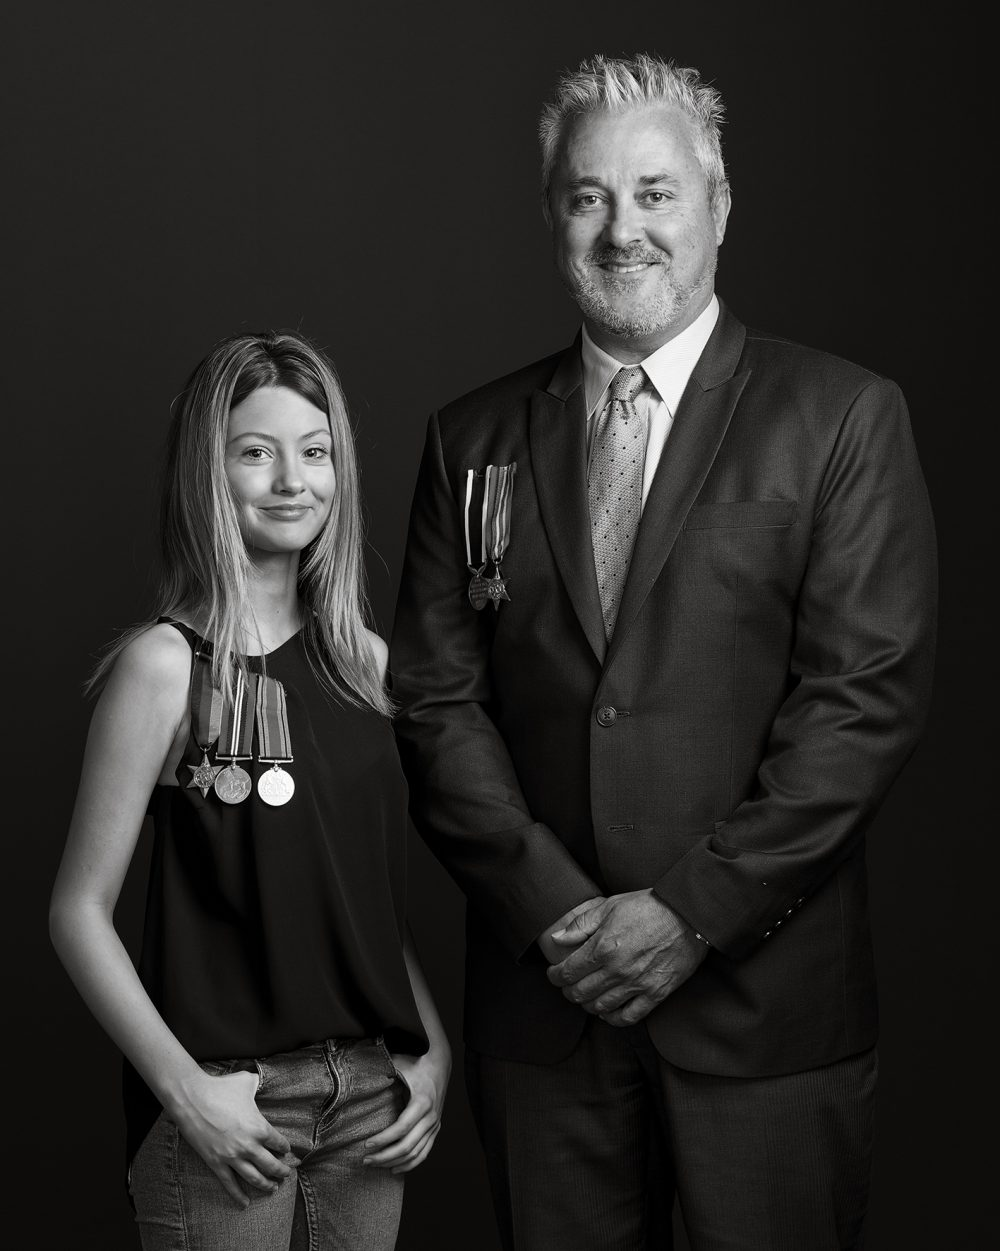 Jaimie Whitham and his stepdaughter Lily